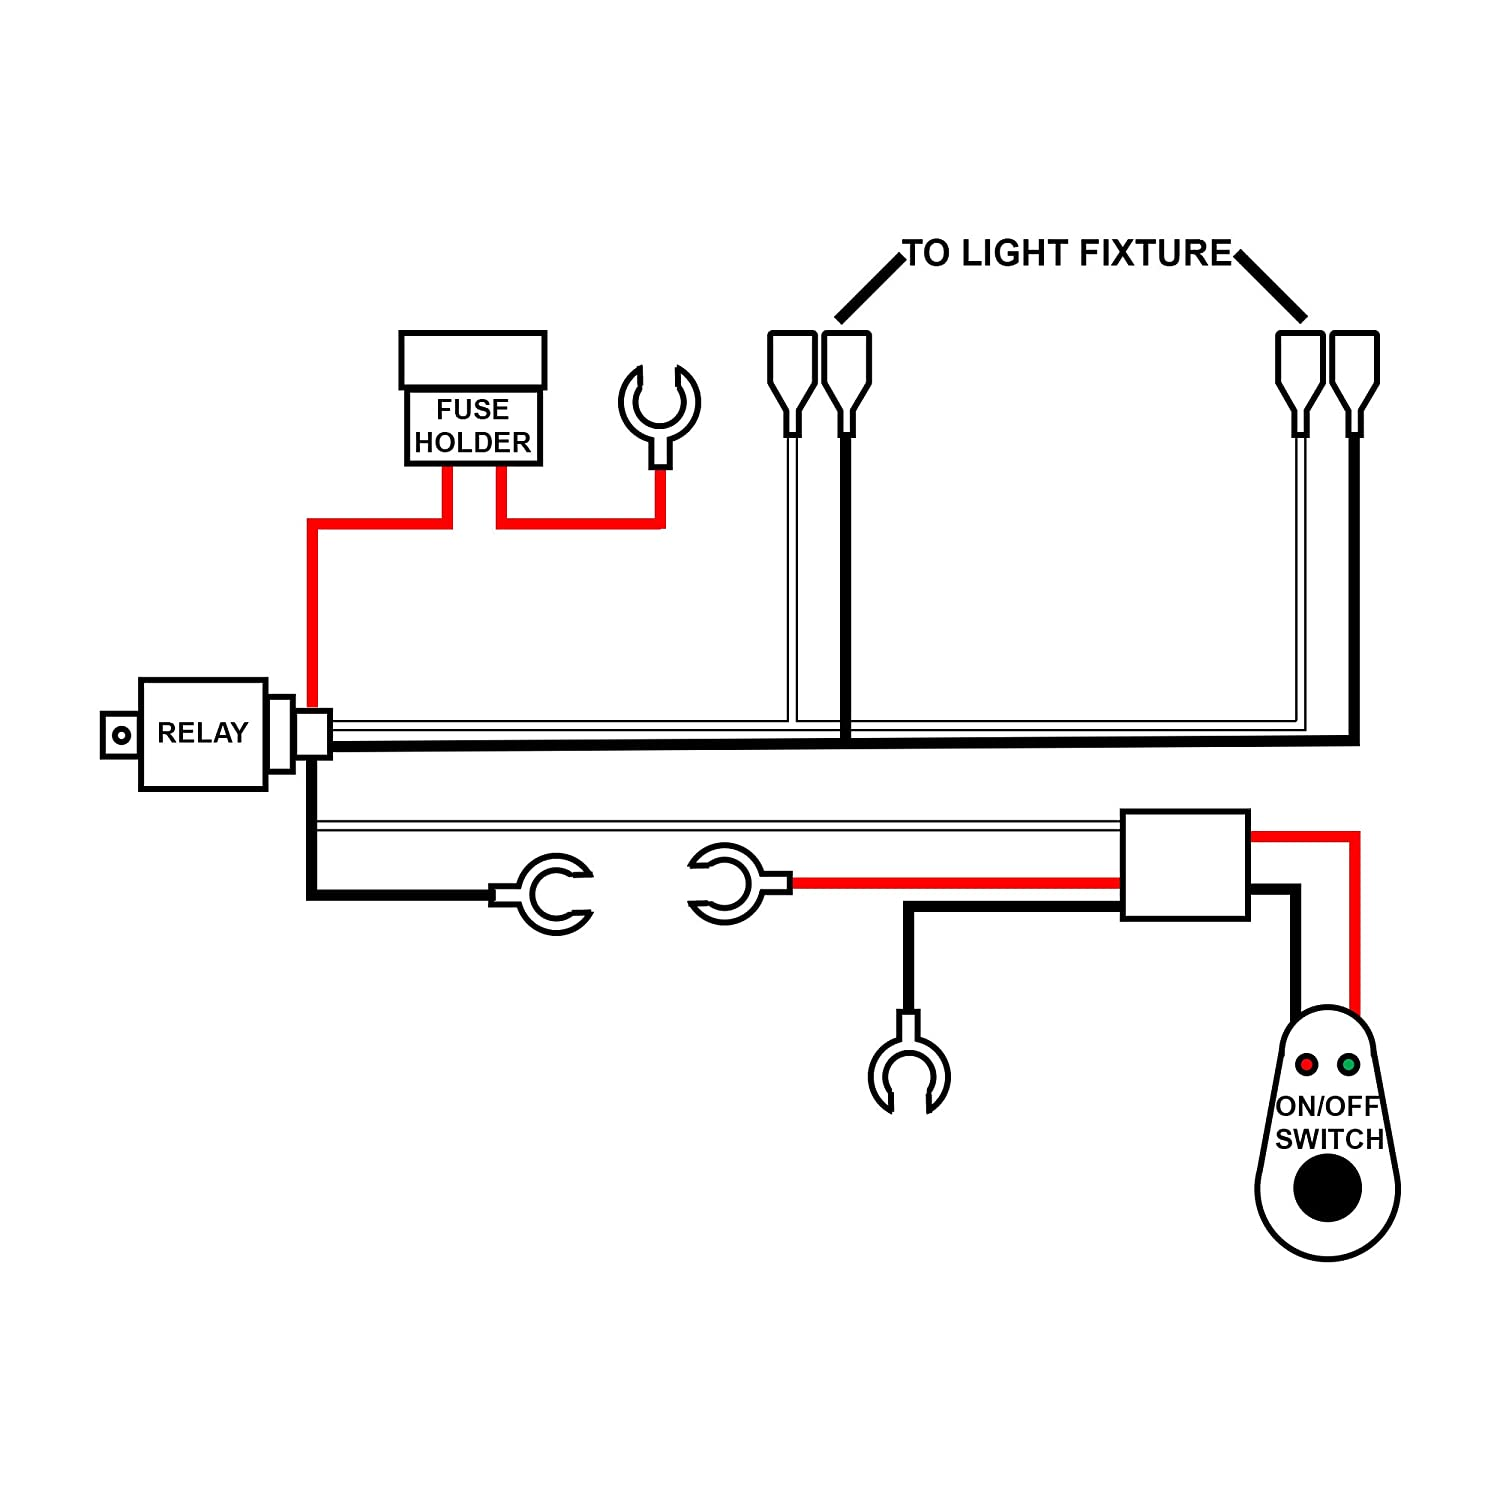 jeep tow bar wiring diagram off road atv jeep truck led light bar wiring harness free ... #2